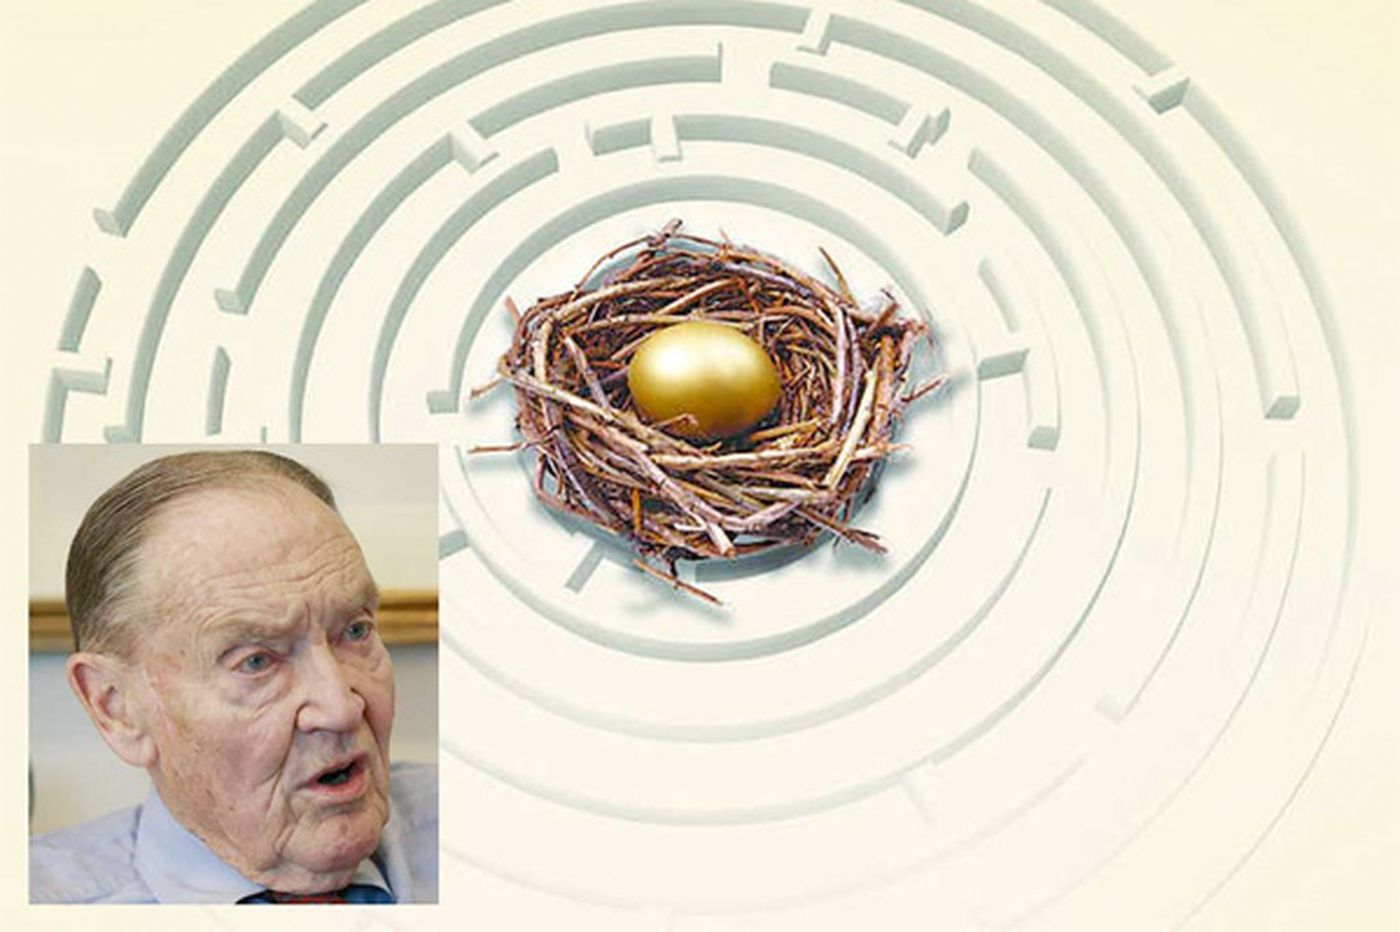 Bogle's view: Retirement system is broken